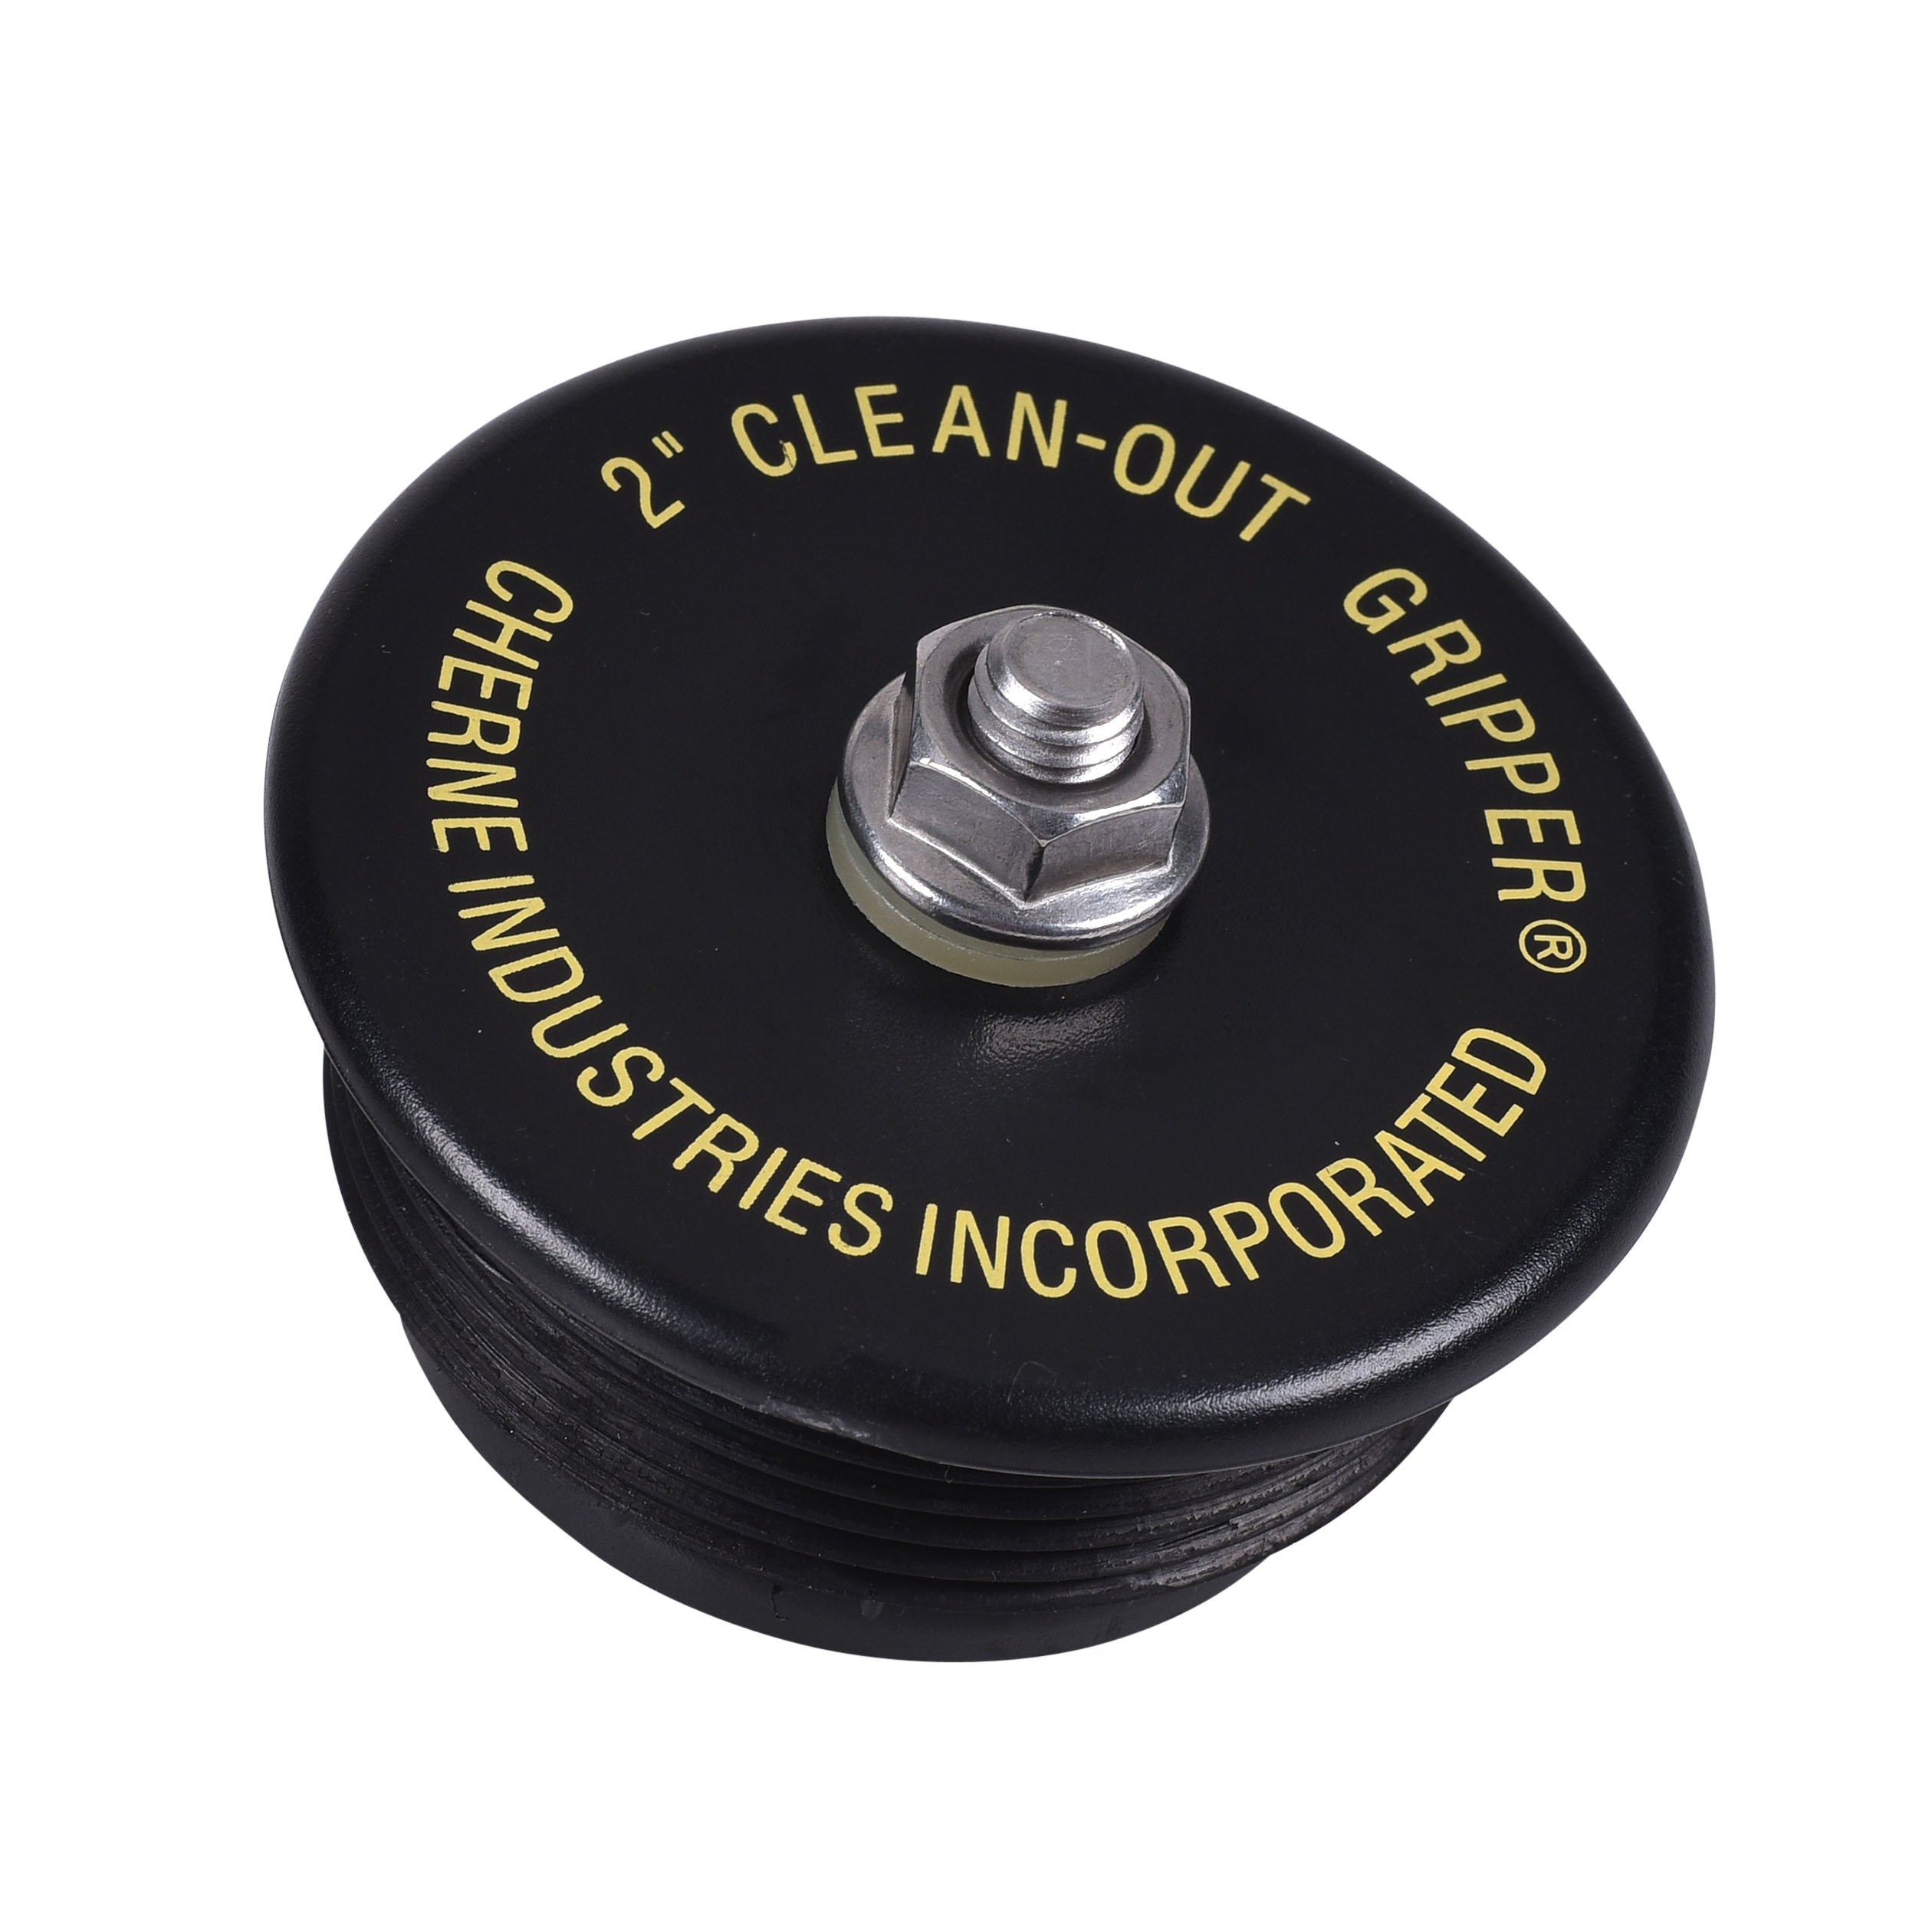 Cherne 270168 Clean-Out 2 Mech Gripper Plug